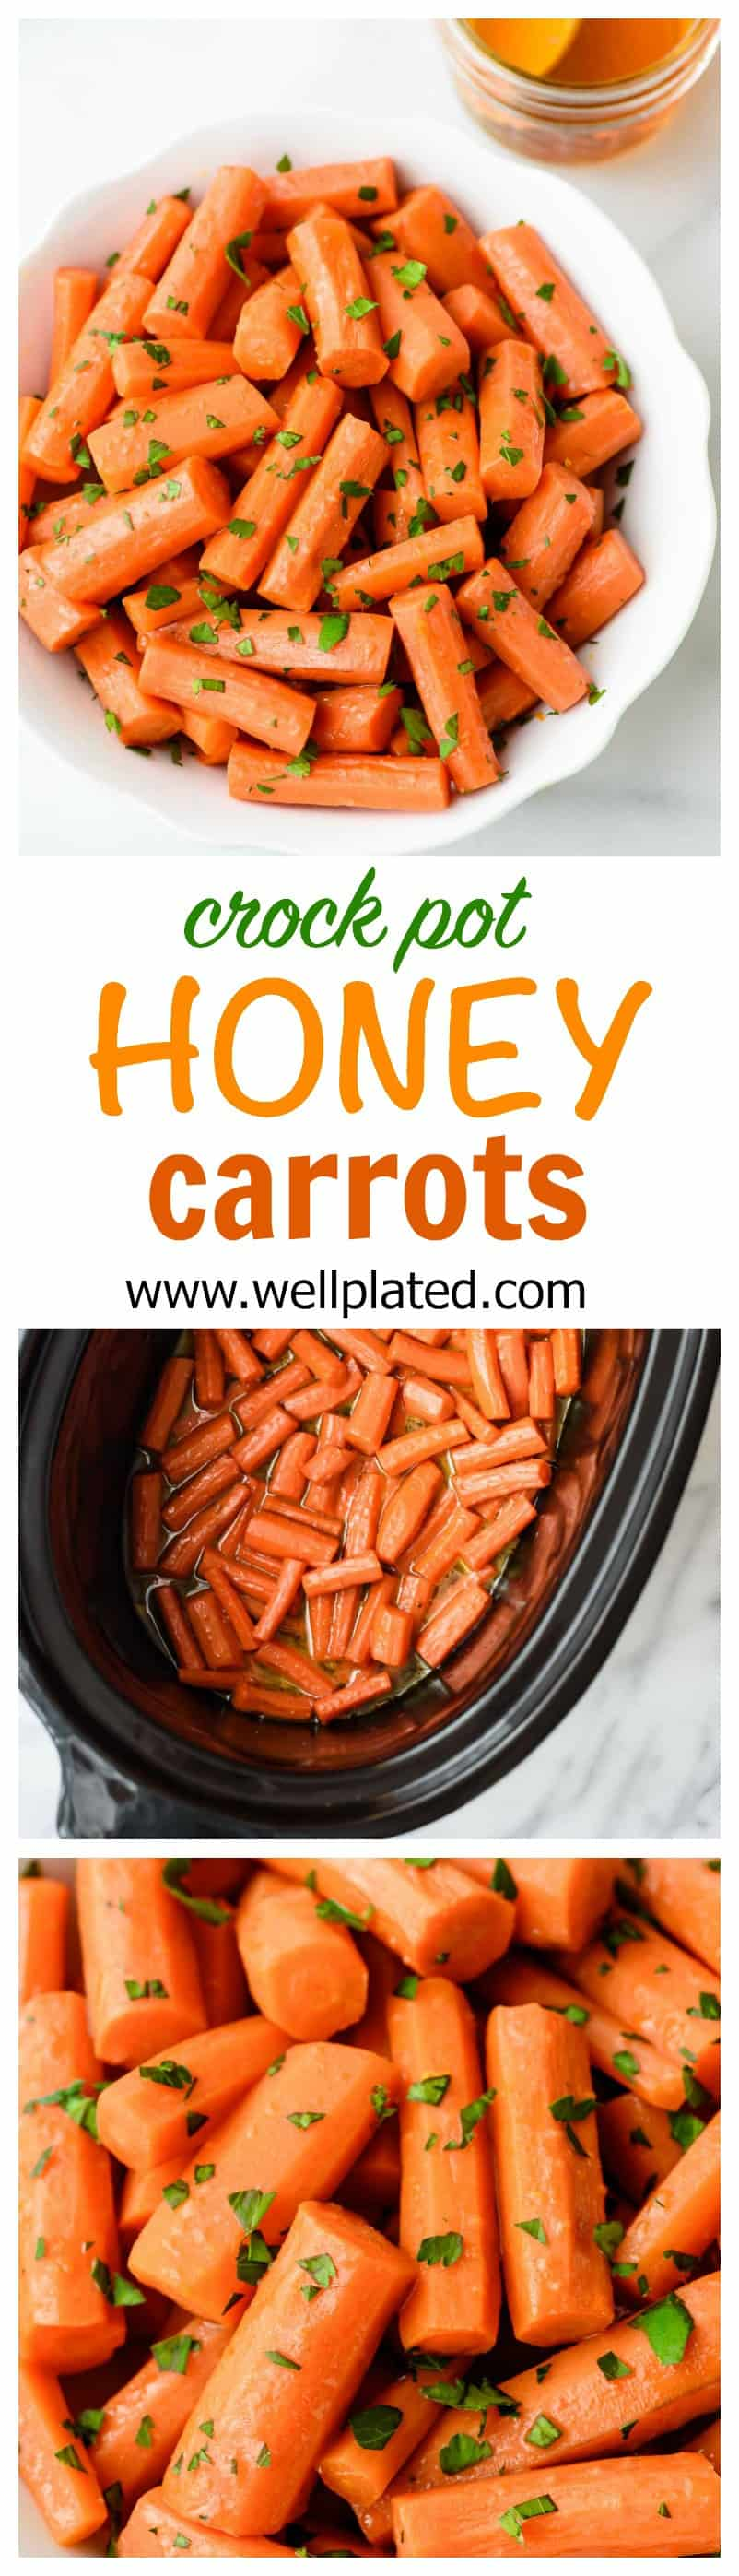 Honey Carrots made in a slow cooker come out tender, sweet, and delicious. This easy side dish is one of the best crock pot recipes for kids! #crockpot #slowcooker #kidfriendly #easysides #carrots